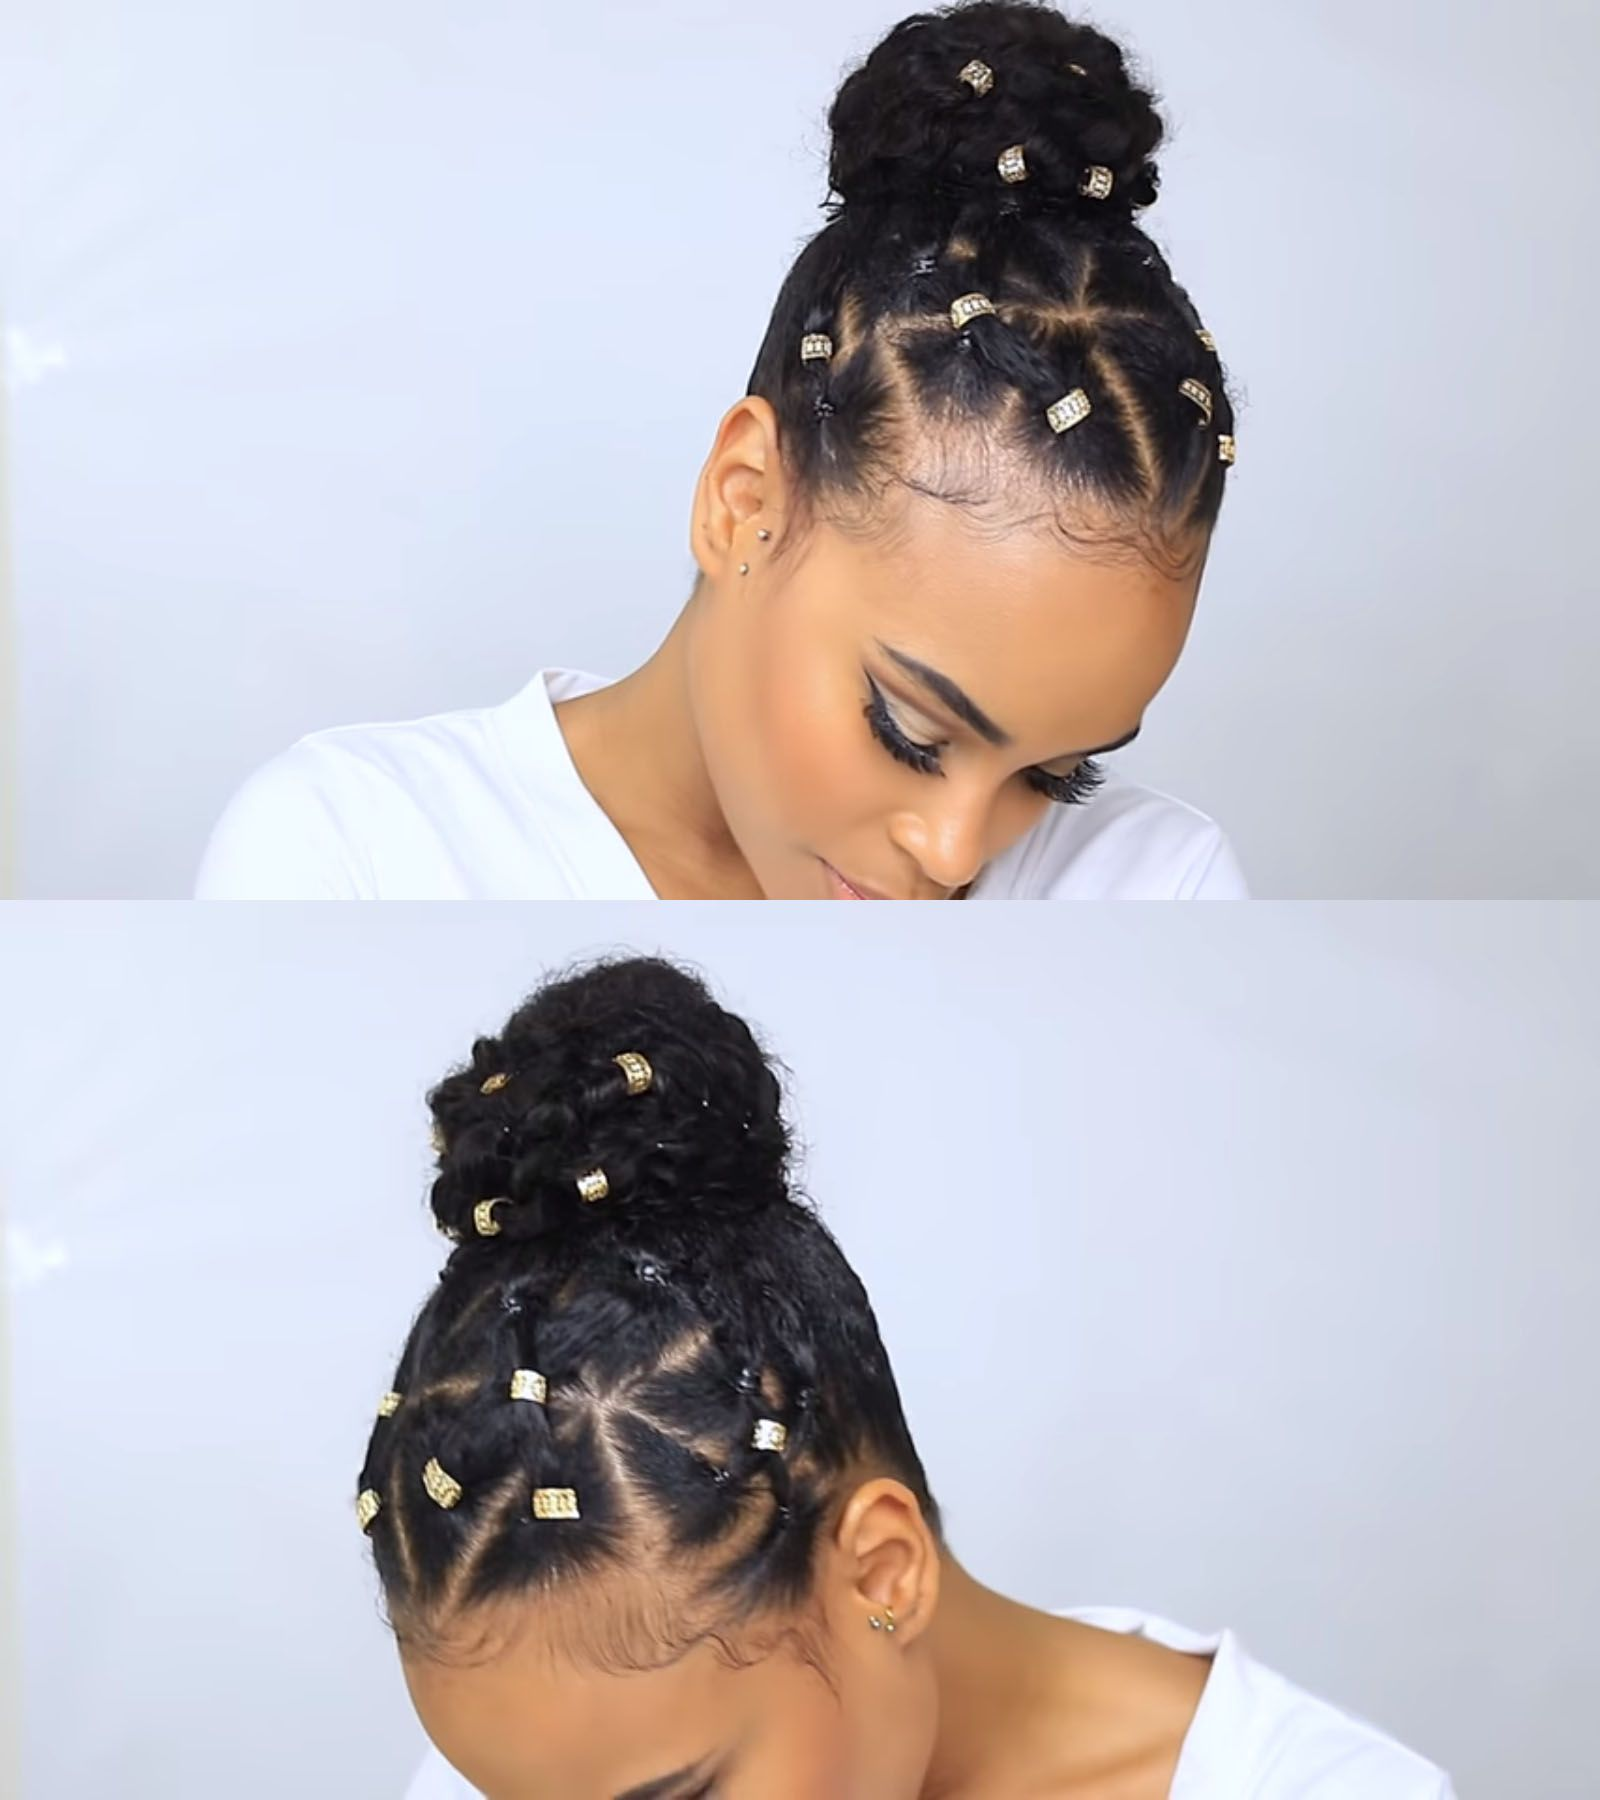 10-minute natural hairstyle video that'll help you in those